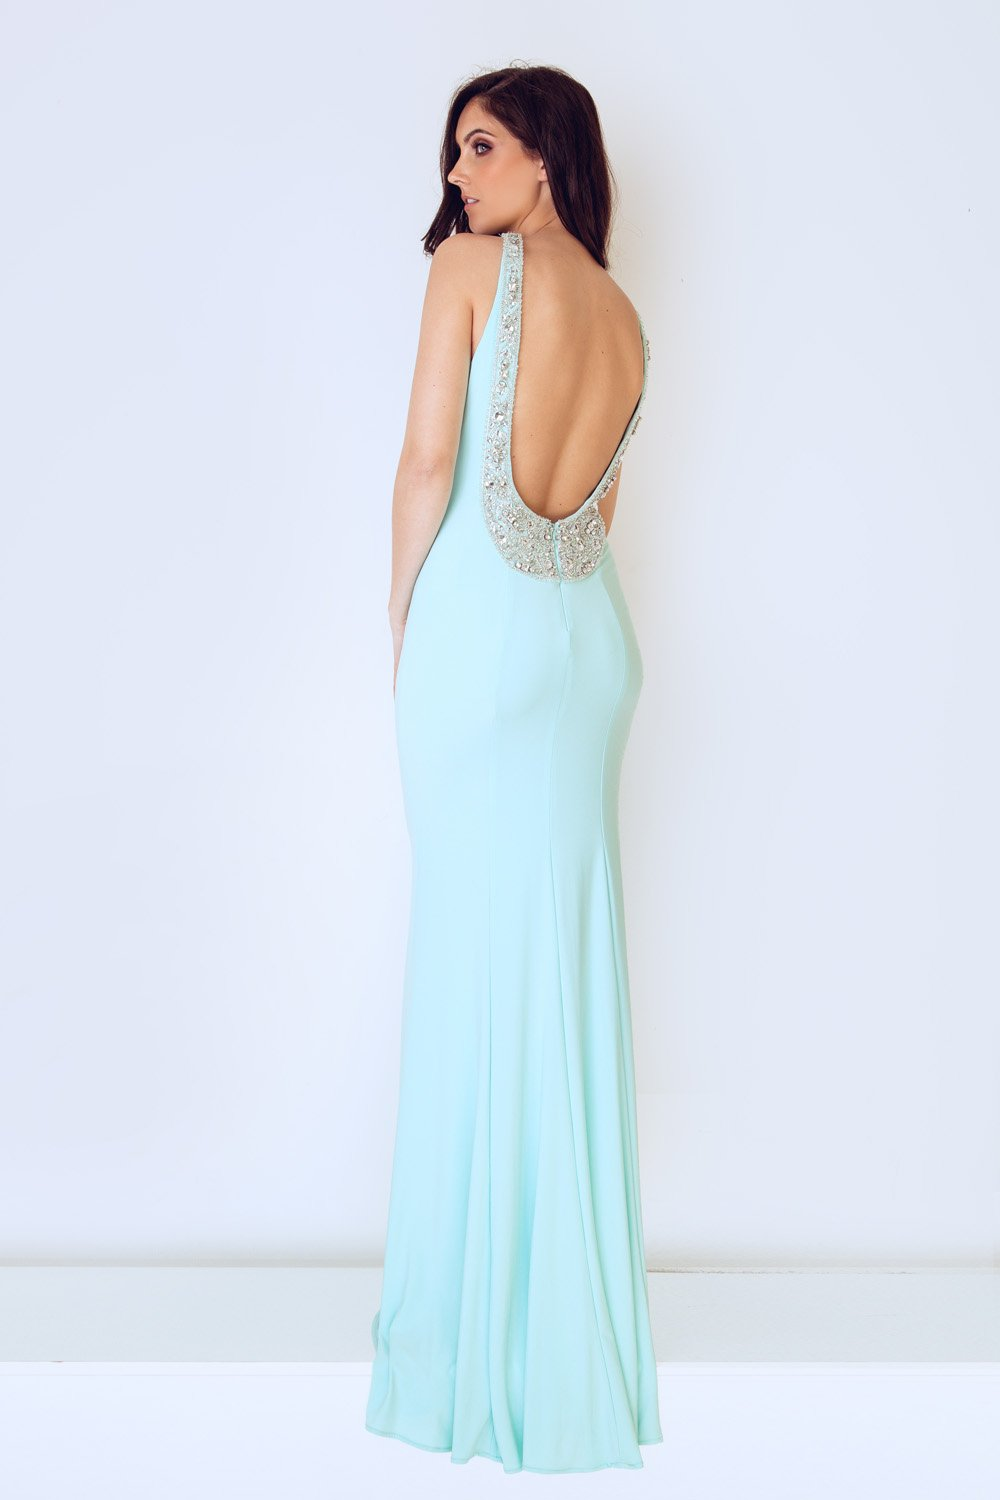 Kasa Duck Egg Blue Dress - Gissings Boutique